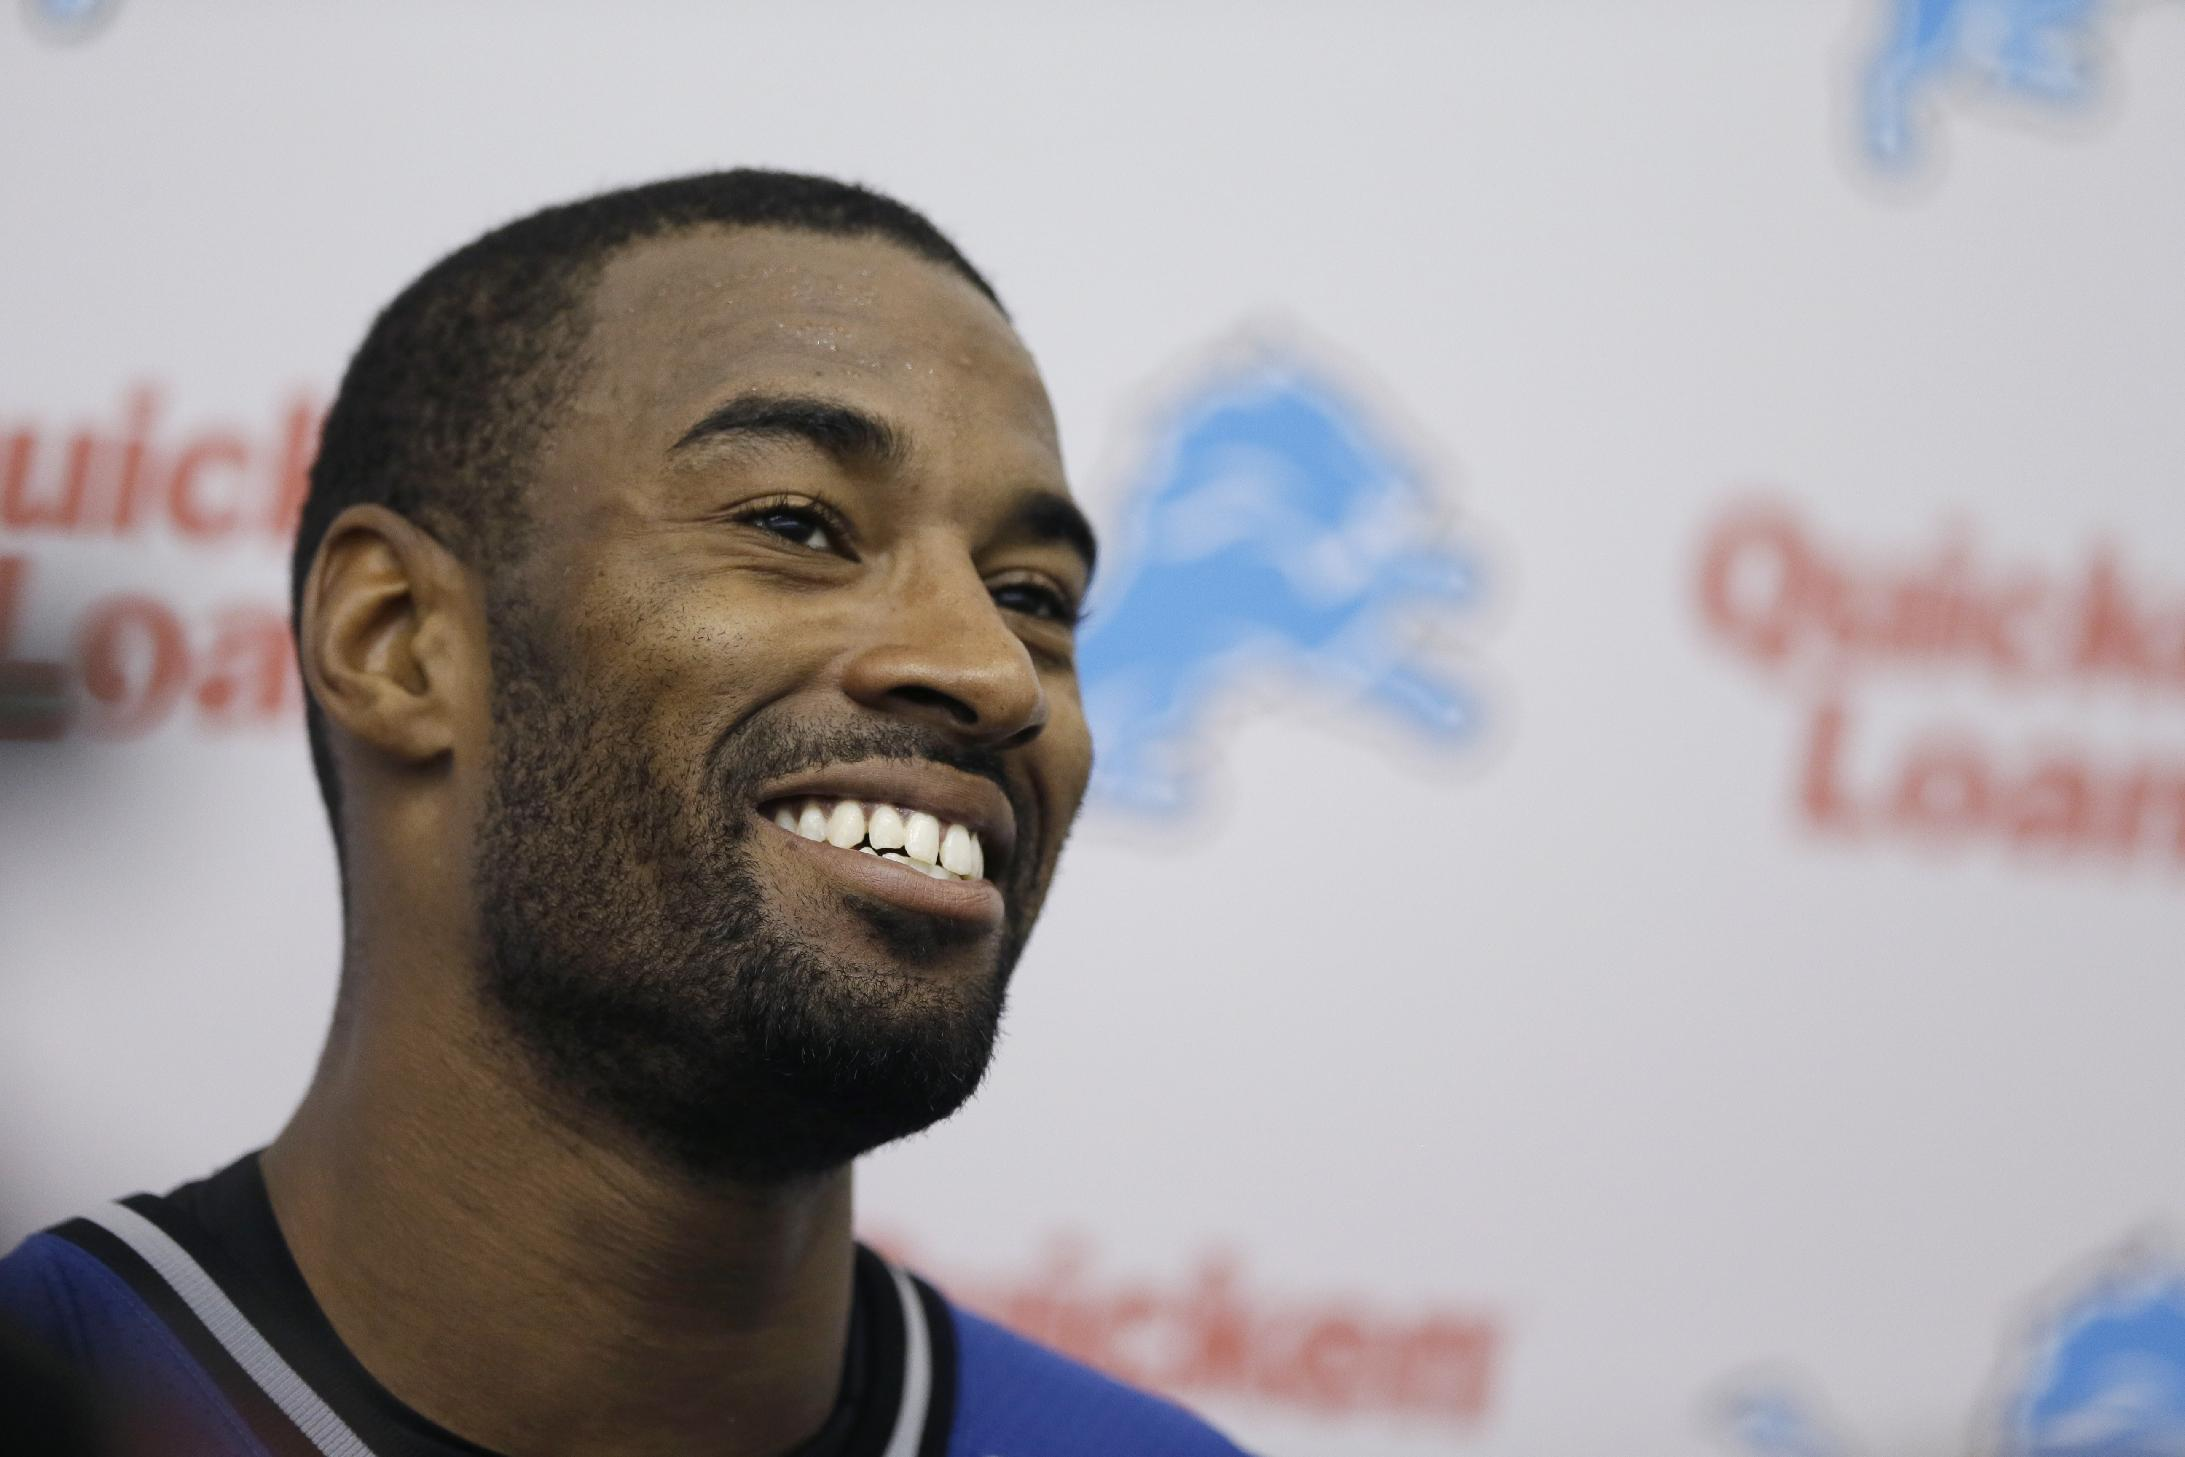 In this May 28, 2014, file photo, Detroit Lions receiver Calvin Johnson talks with the media after an NFL football organized team activity in Allen Park, Mich. Johnson become one of the great players in the history of the Lions, he's also been dependable and durable throughout his career. But toward the end of last season, the bumps and bruises finally seemed to be catching up with the star receiver